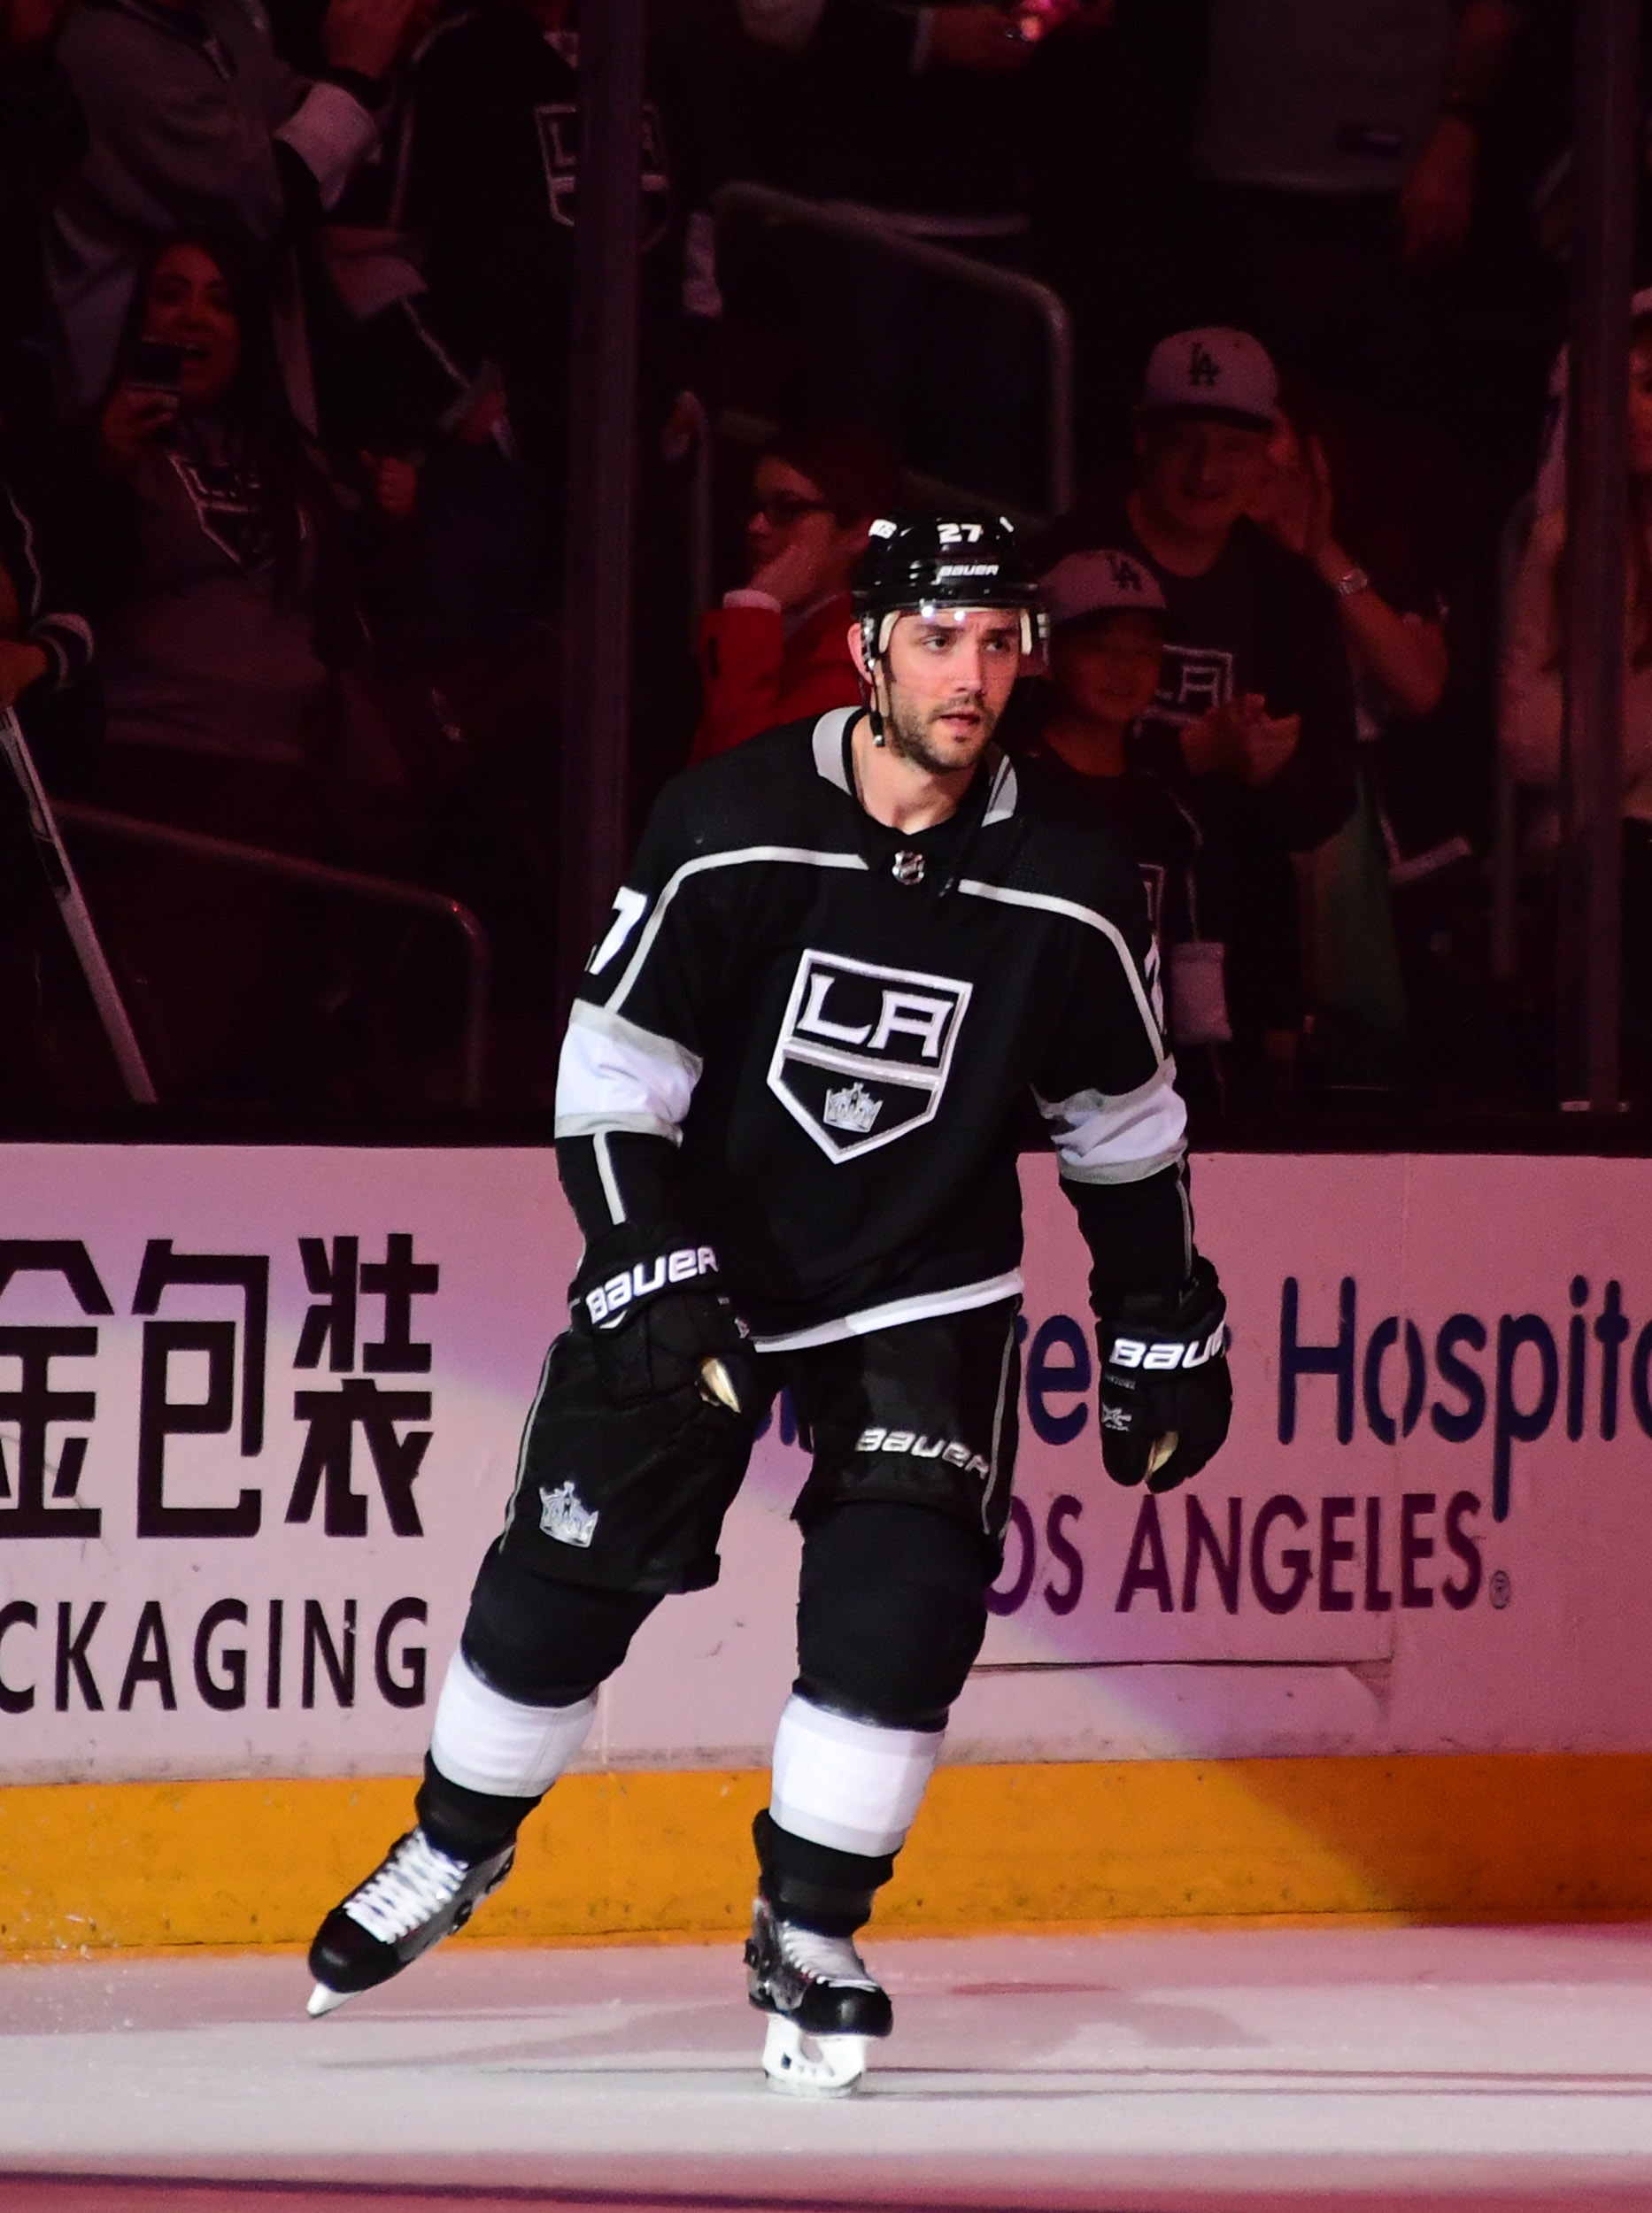 The team has several trade options if they want to totally rebuild the  franchise. The Kings already moved Muzzin 74698e3e9910